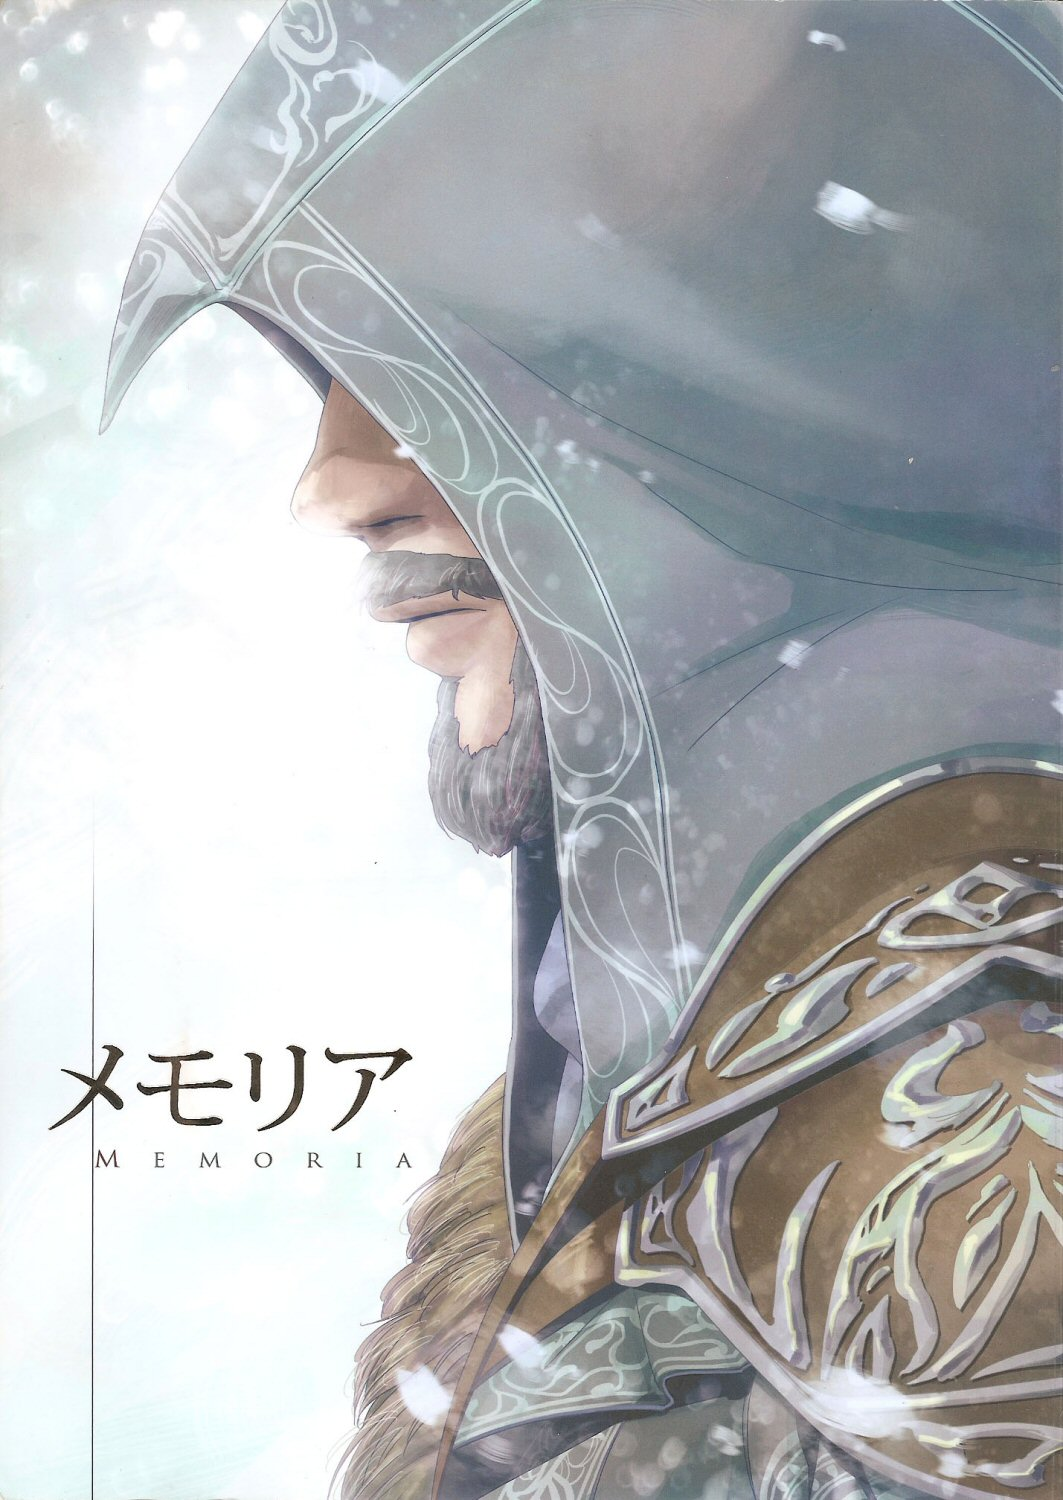 Assassin's Creed: Revelations Memoria (Doujinshi) Oneshot